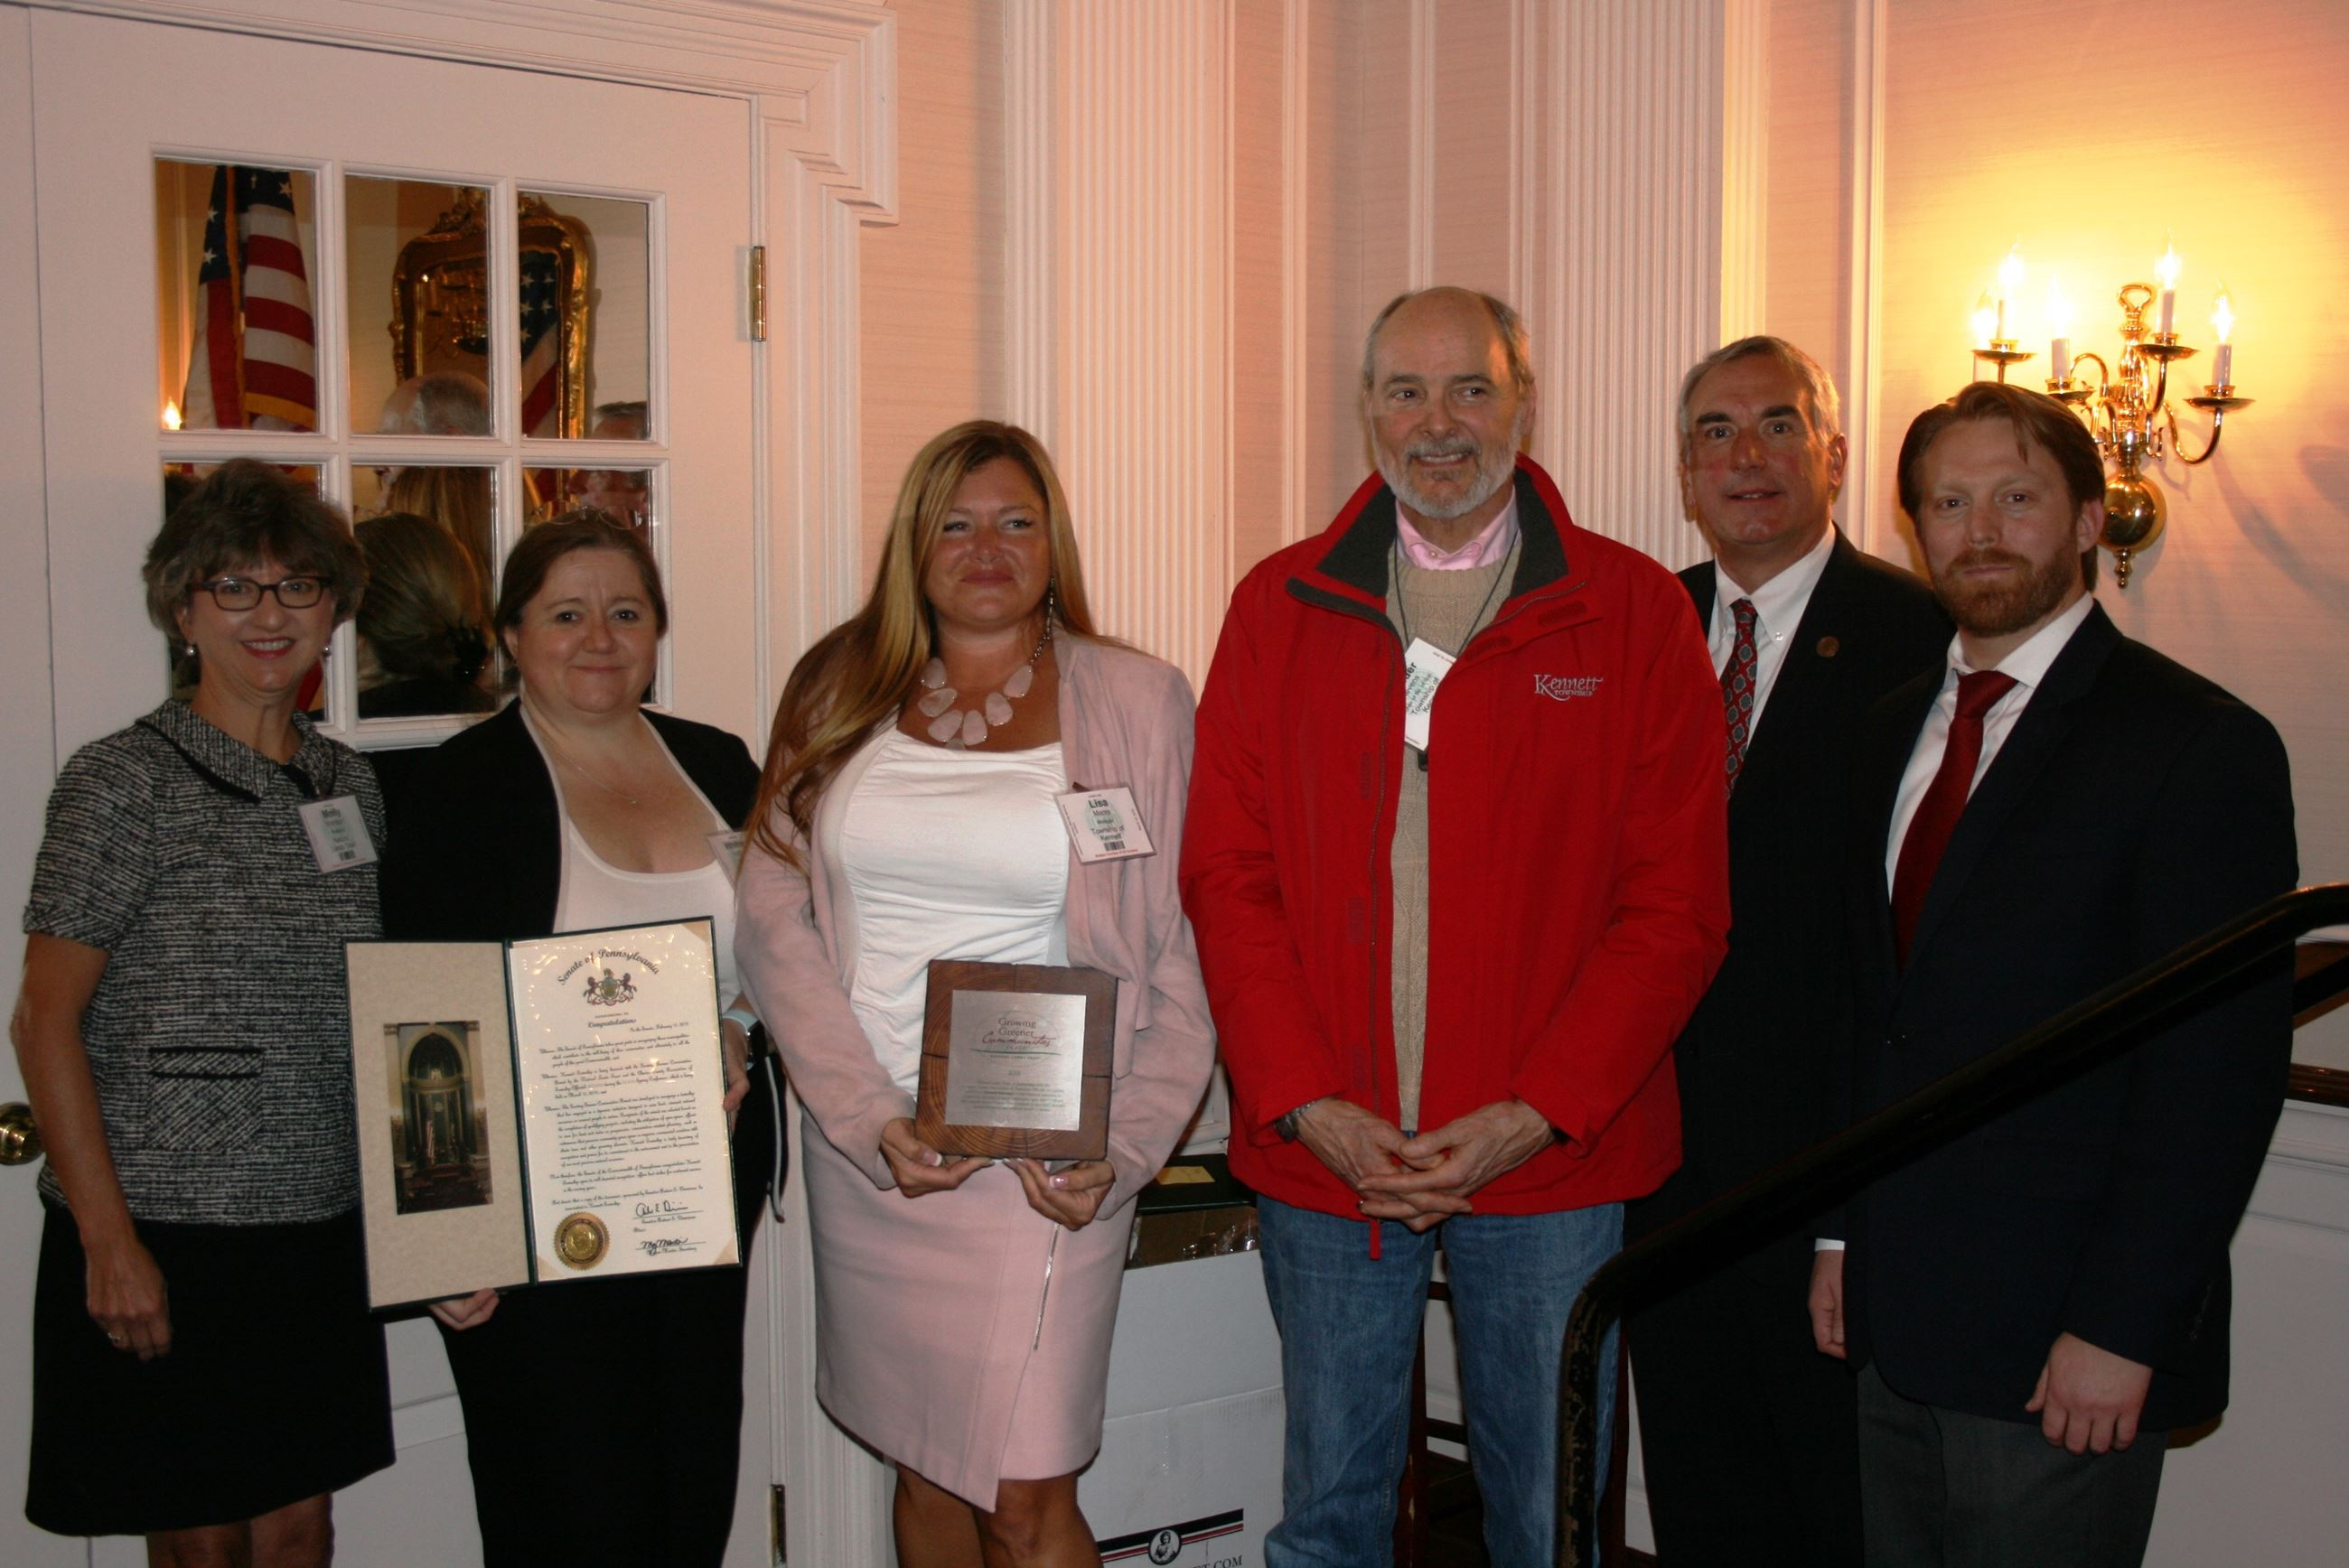 Growing Greener Award Winner - Kennett Township